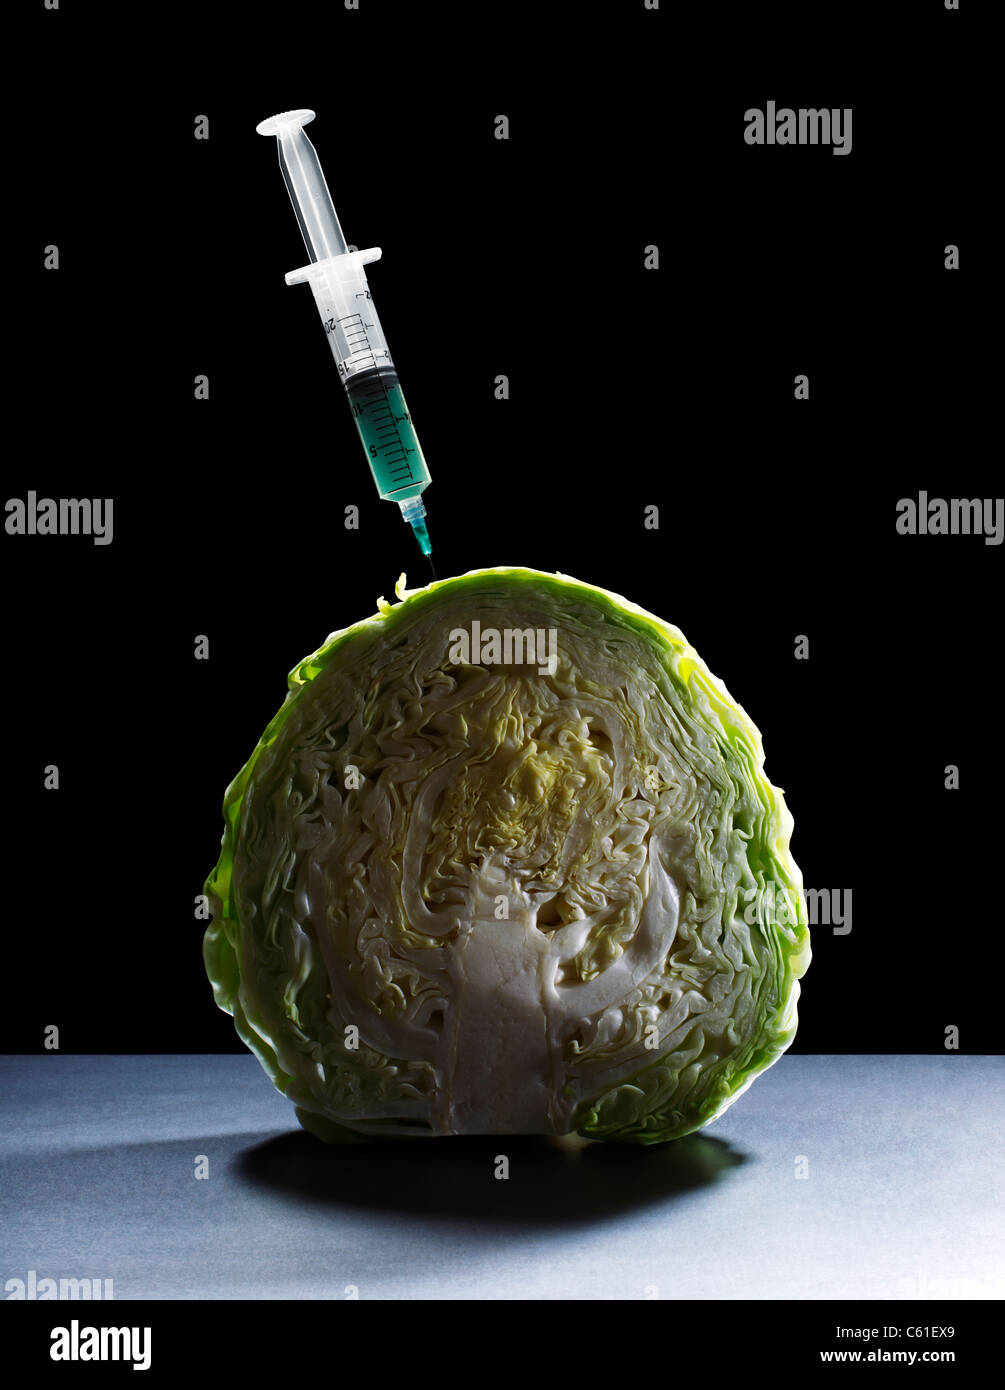 Cabbage with Hypodermic Syringe - Stock Image